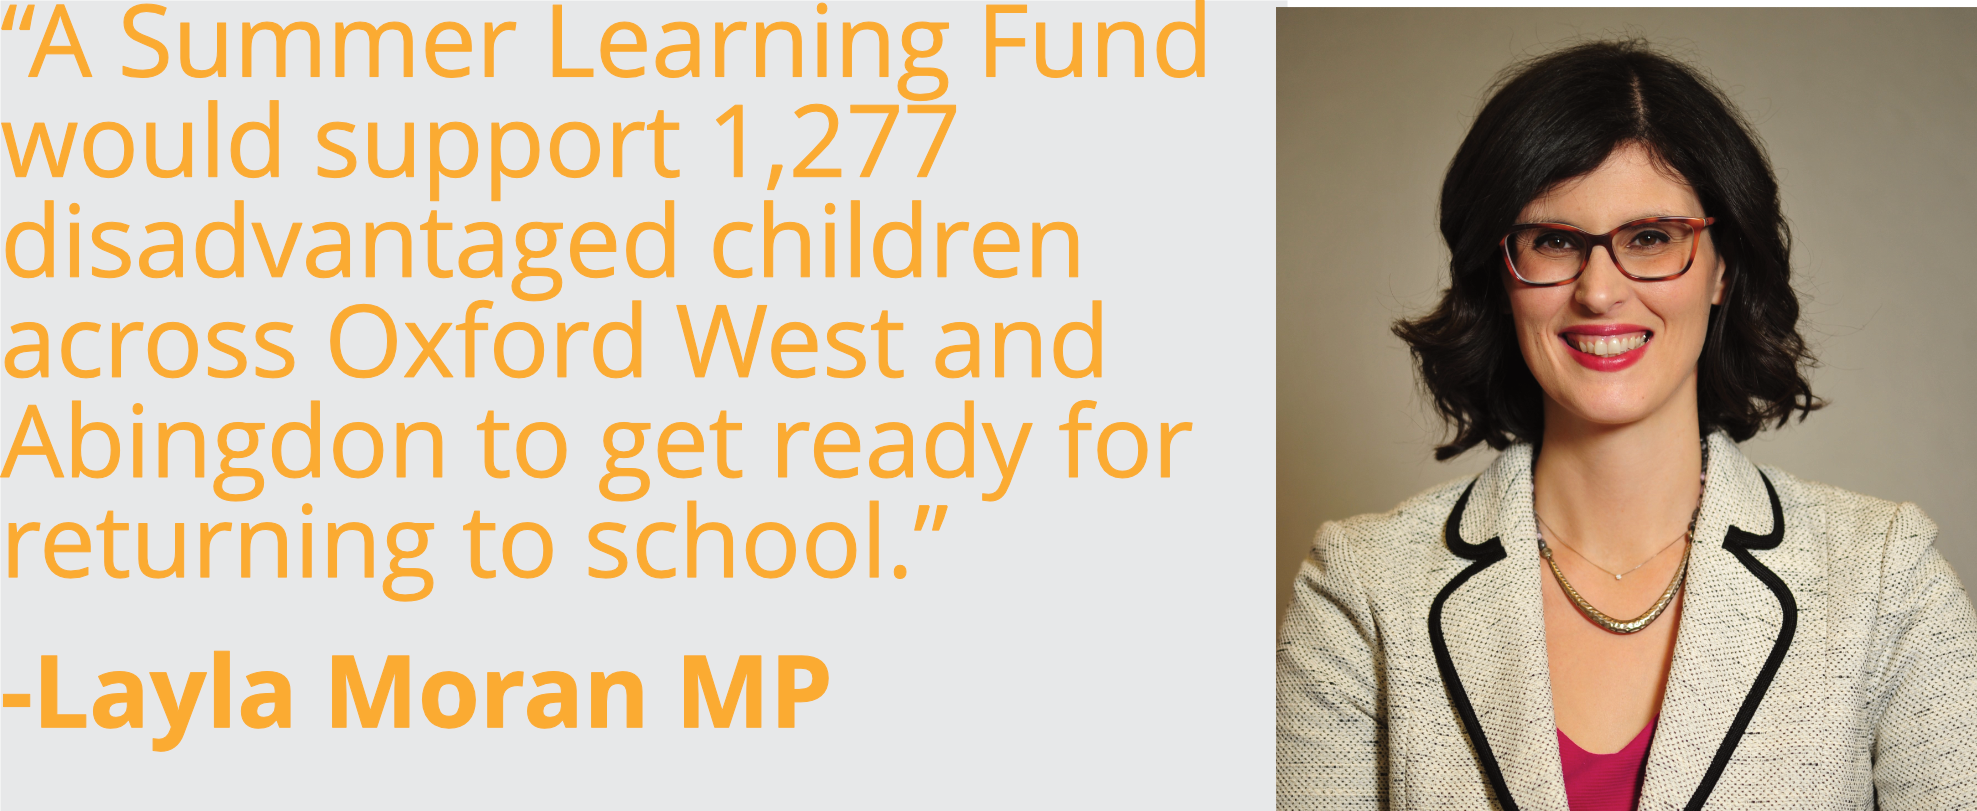 a Summer Learning Fund that would support 1,277 disadvantaged children across Oxford West and Abingdon to get ready for returning to school.